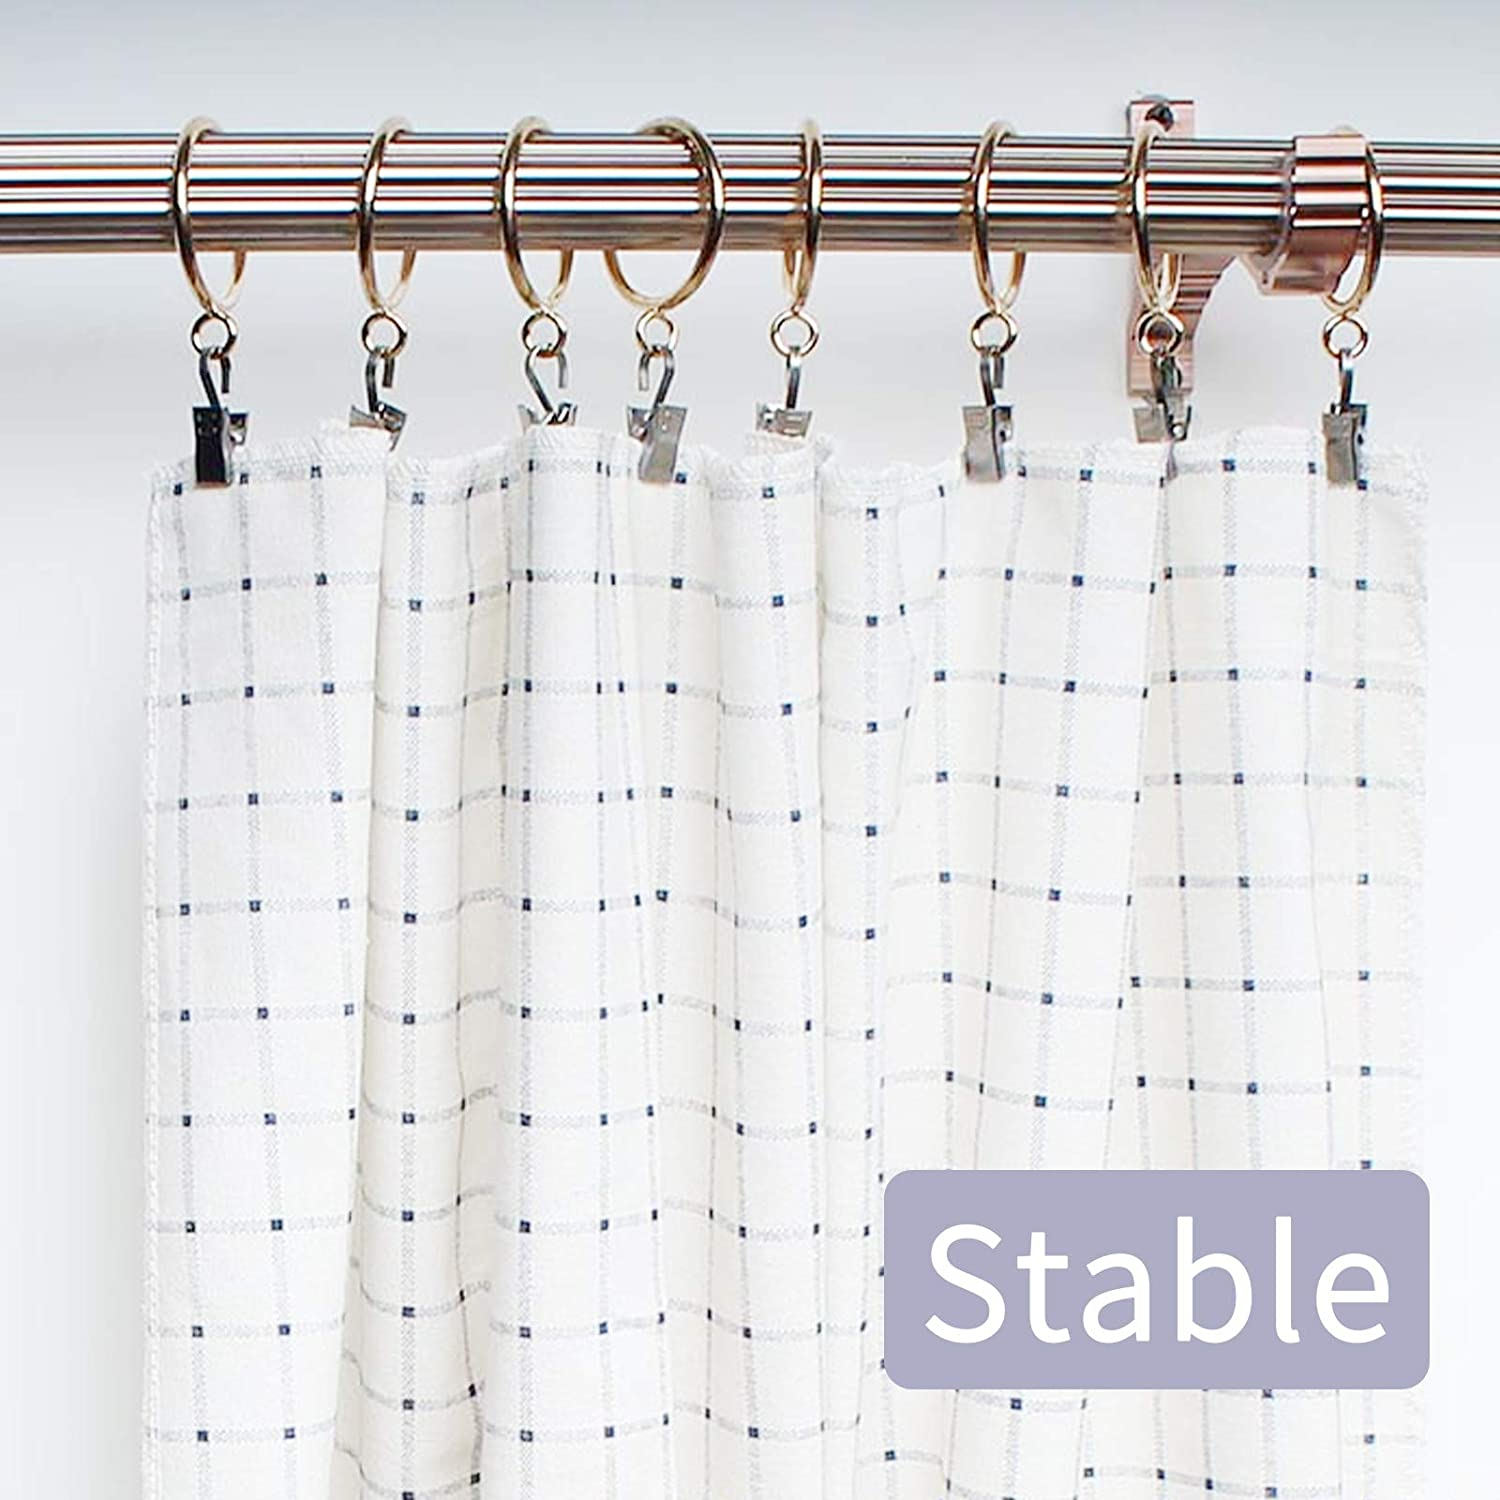 HEIGOO 10 PCS Curtain Rings,38mm Golden Removable Curtain Pole Rings,Curtain Hoops and Hooks,in Kitchen Bathroom